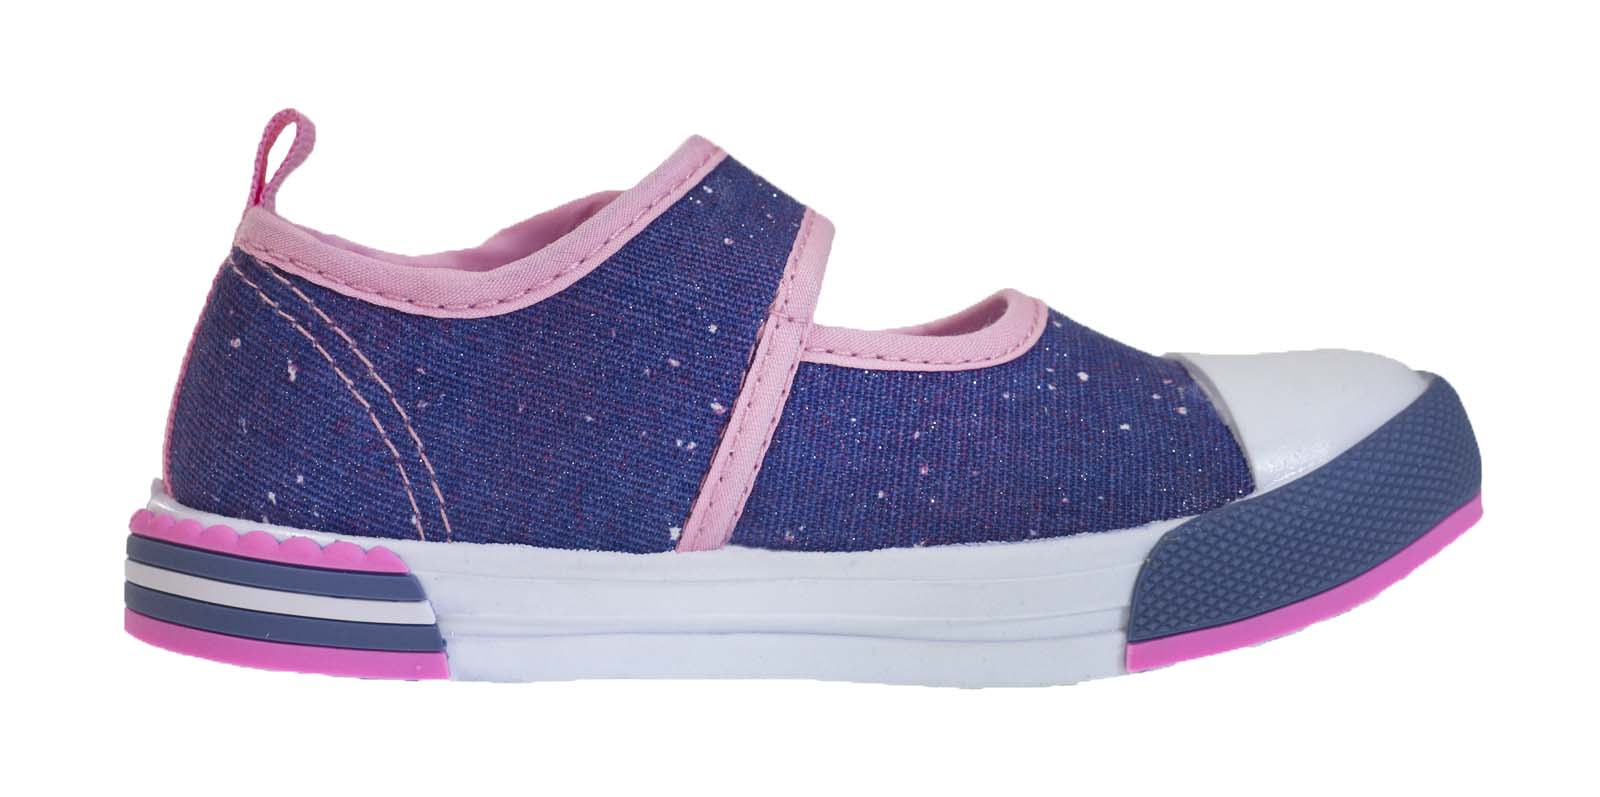 353a1ec9c25f Girls Glitter Canvas Shoes Mary Jane Pumps Sequin Summer Trainers ...